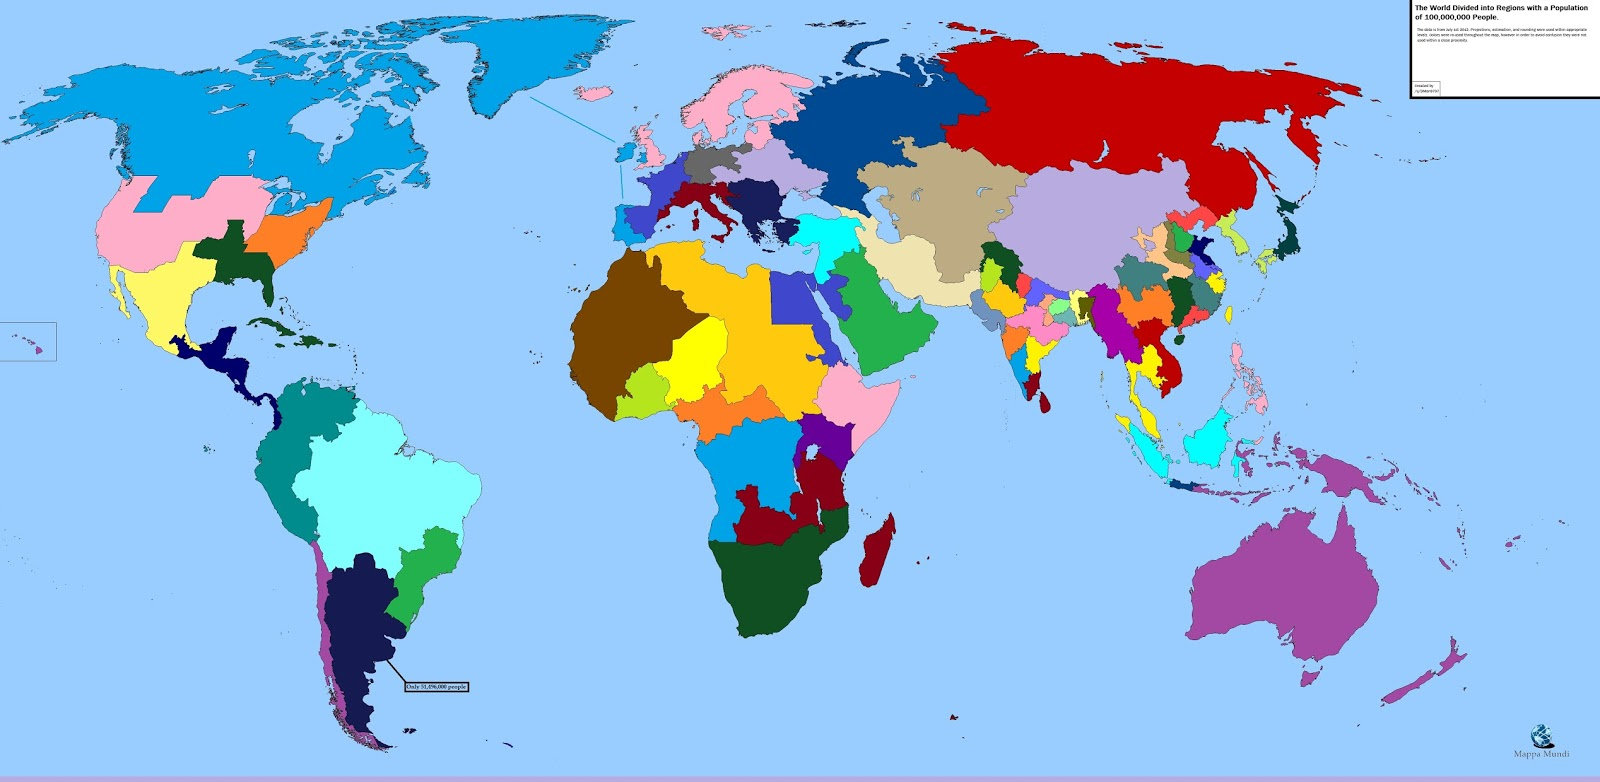 World divided into regions with a population of 100,000,000 people